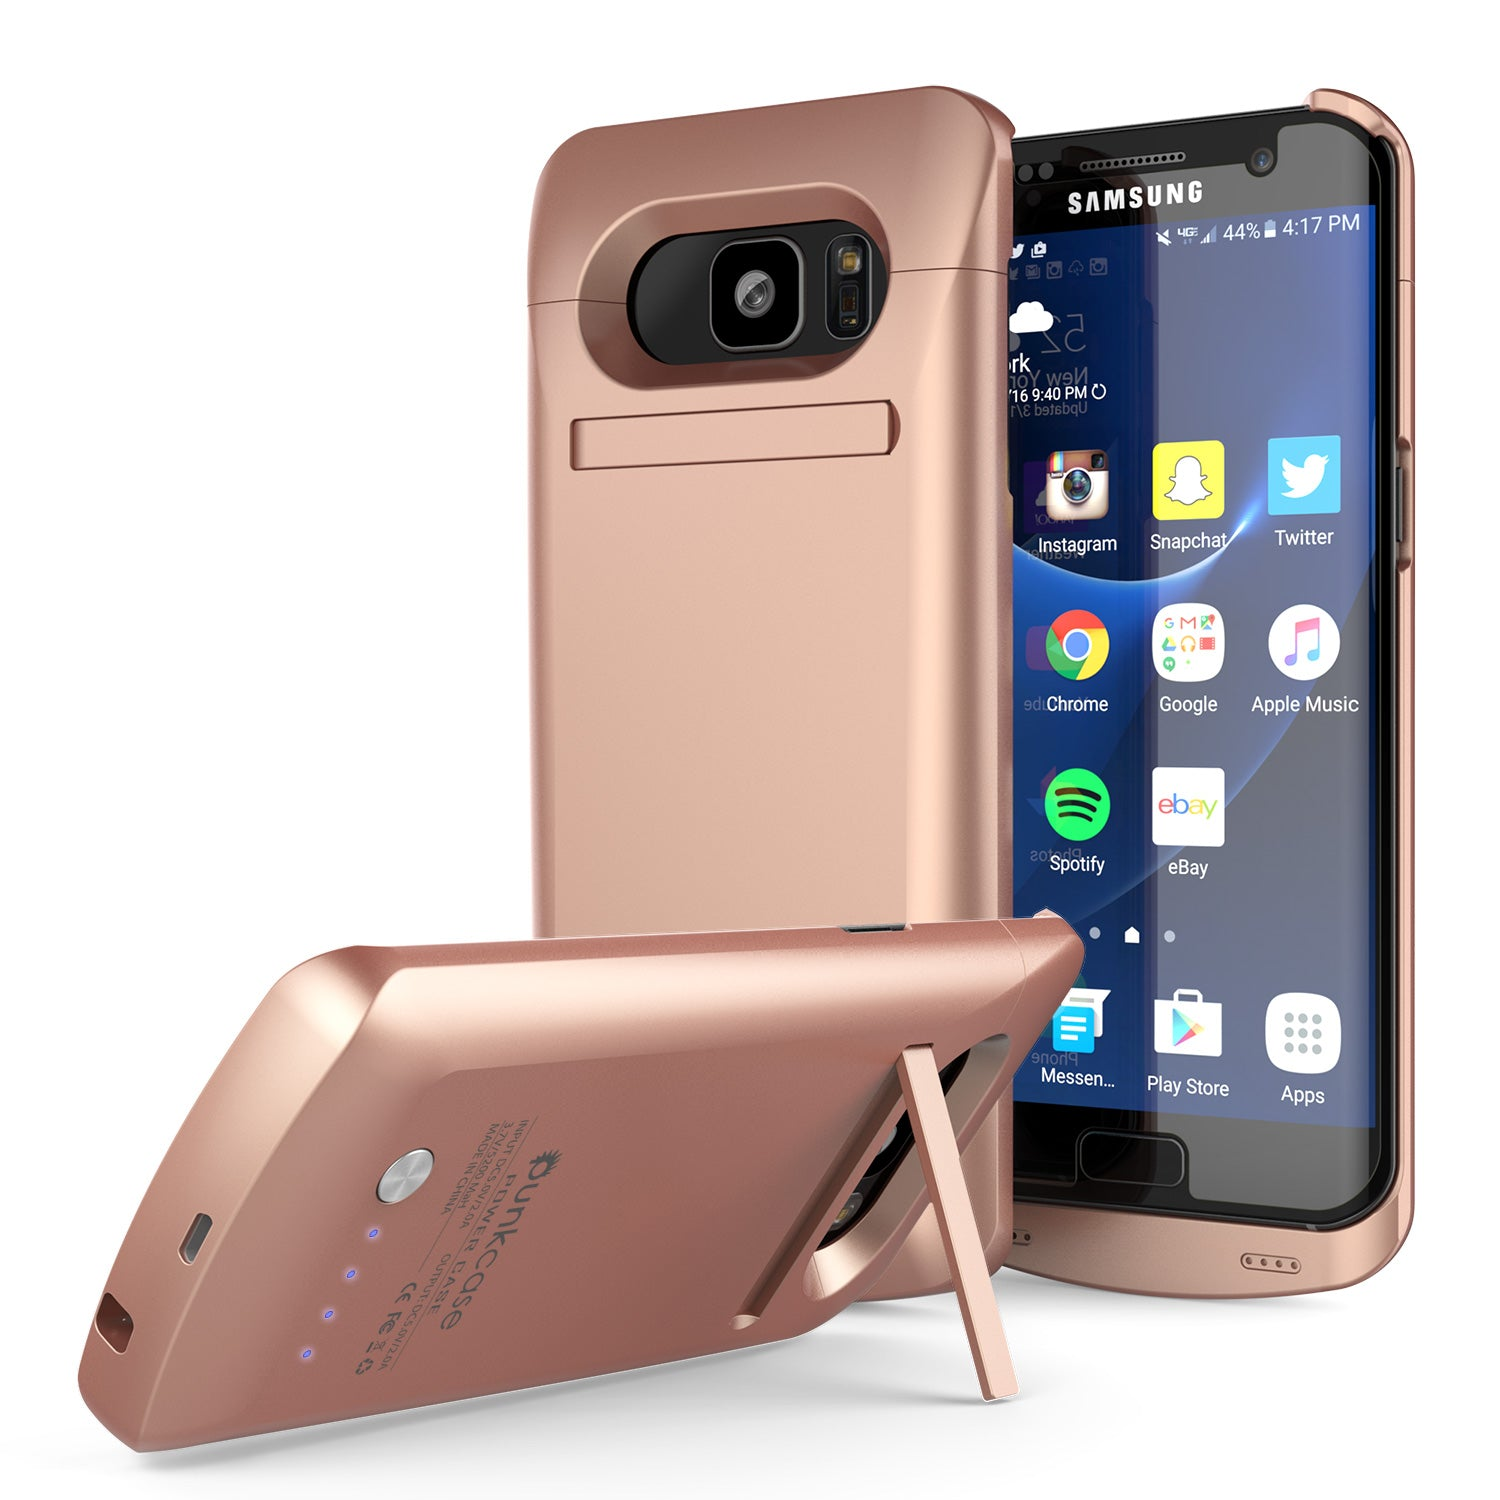 Galaxy S7 EDGE Battery Case, Punkcase 5200mAH Charger Case W/ Screen Protector | Integrated Kickstand & USB Port | IntelSwitch [Rose Gold]